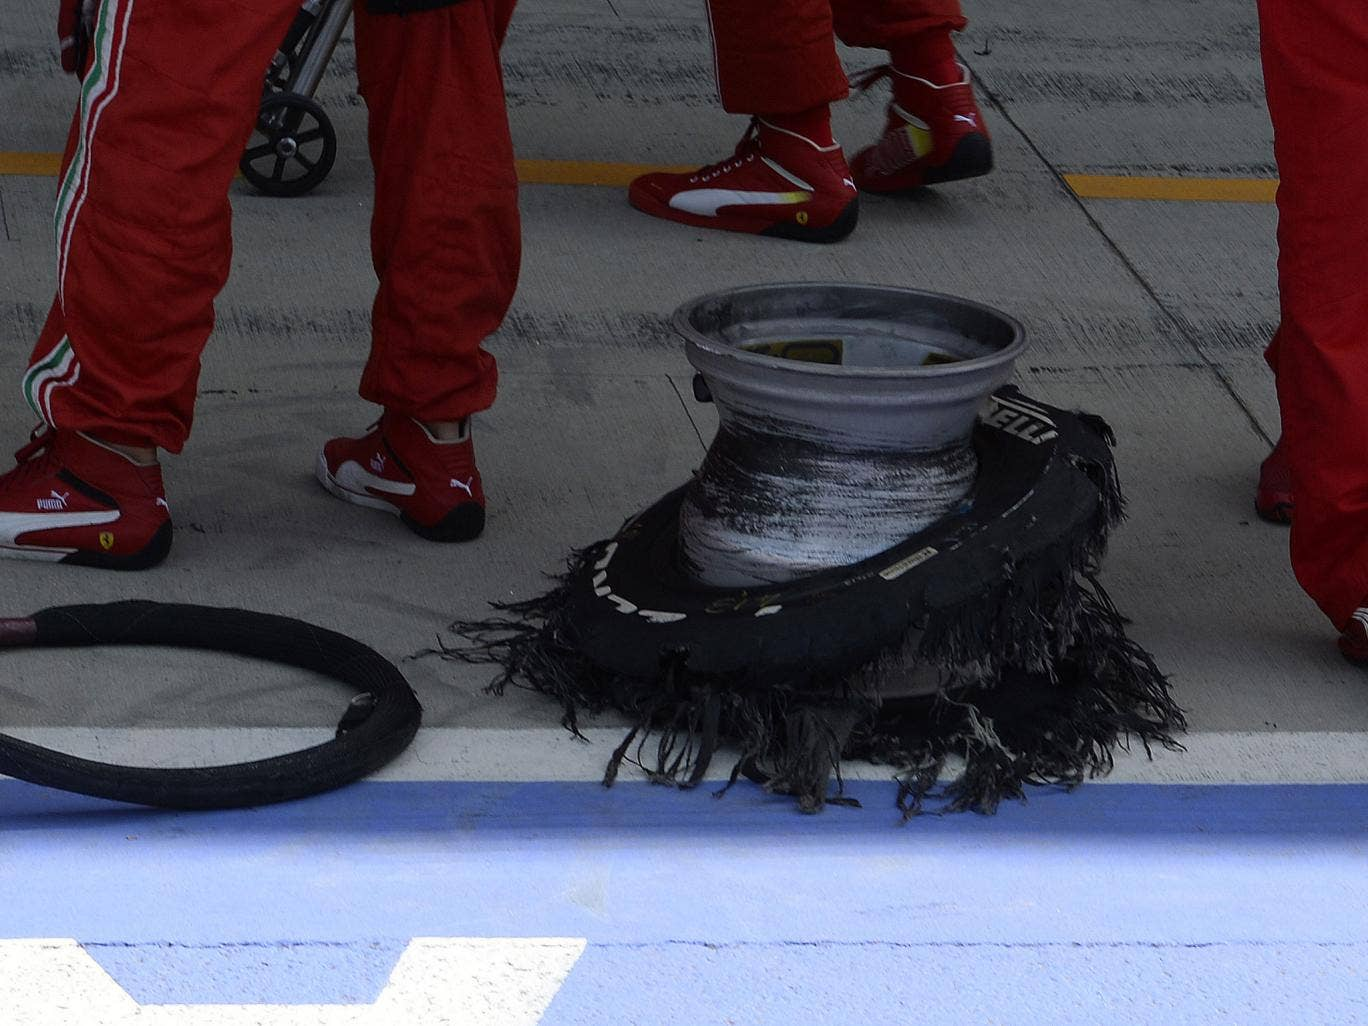 Pirelli said that the exploding tyres were 'unforeseen'